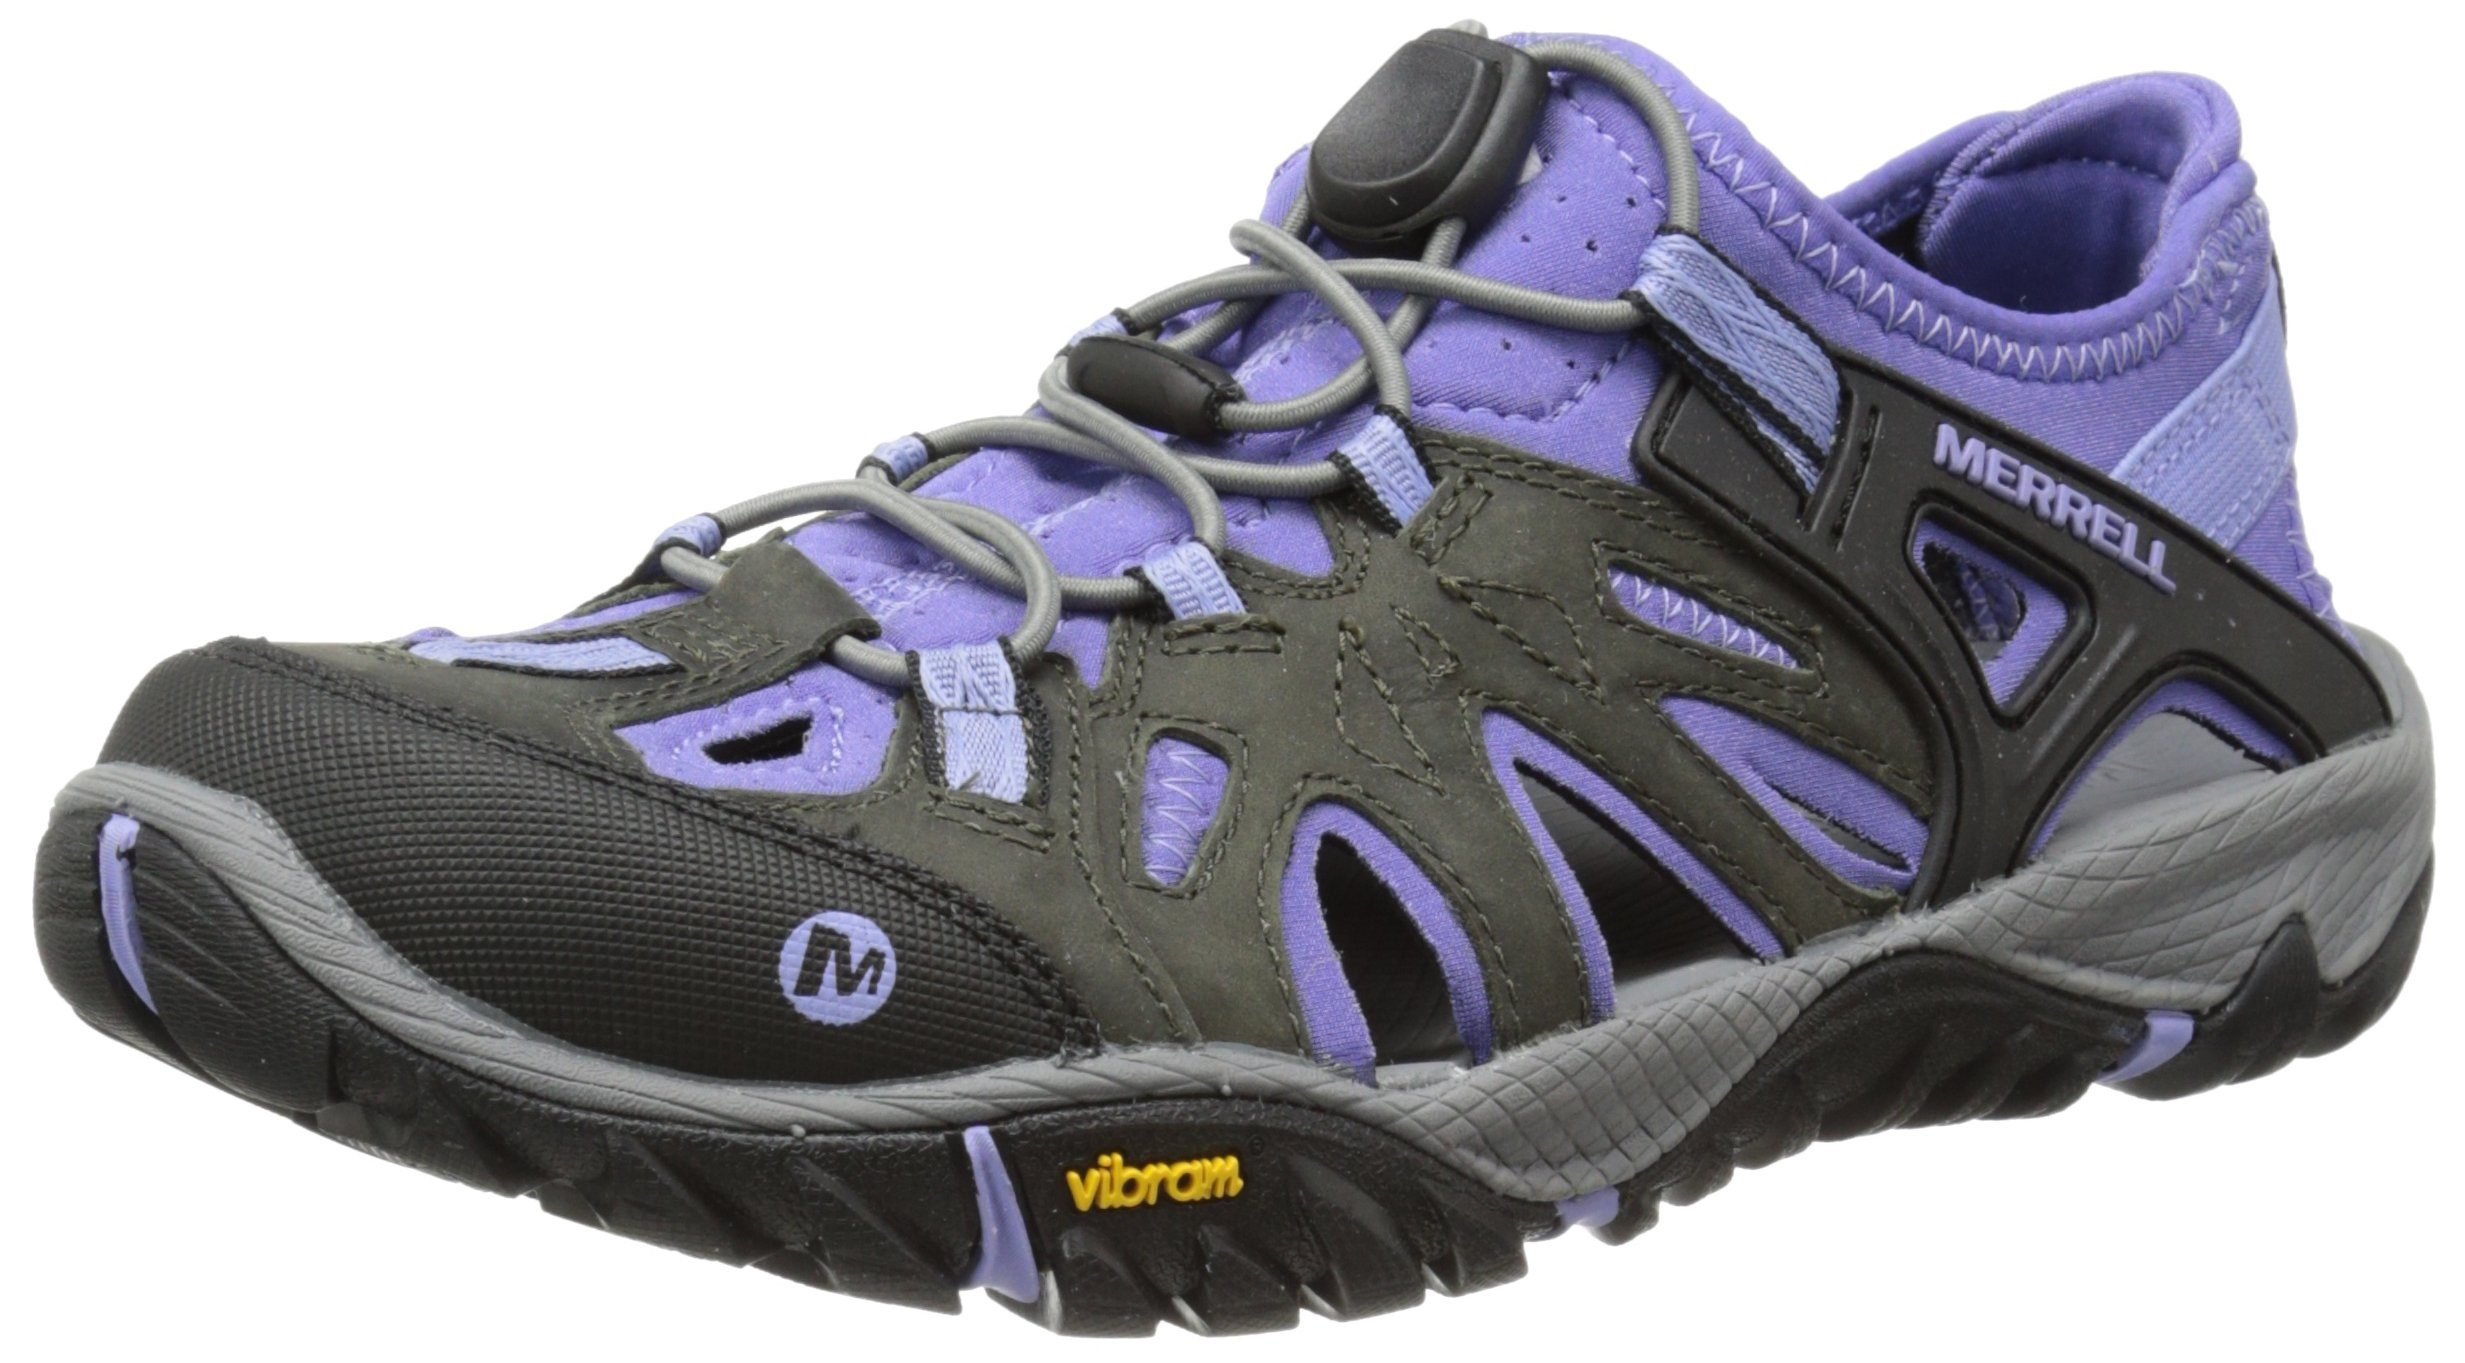 Merrell Women's All Out Blaze Sieve Water Shoe,Castle Rock,8.5 M US